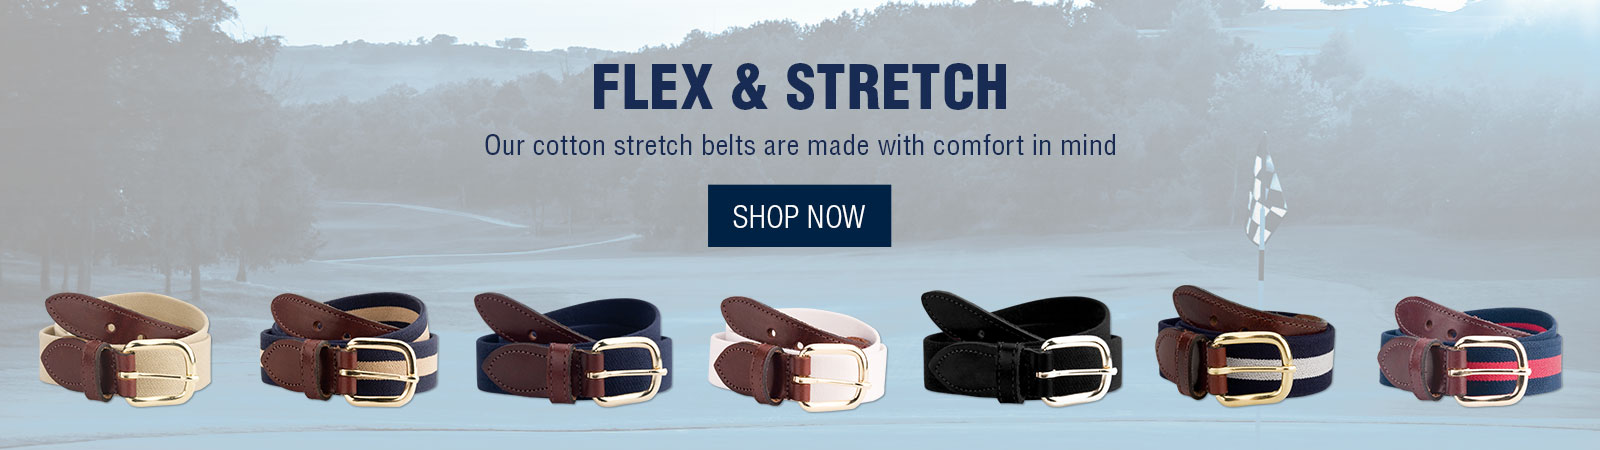 Flex & Stretch - Cotton Belts